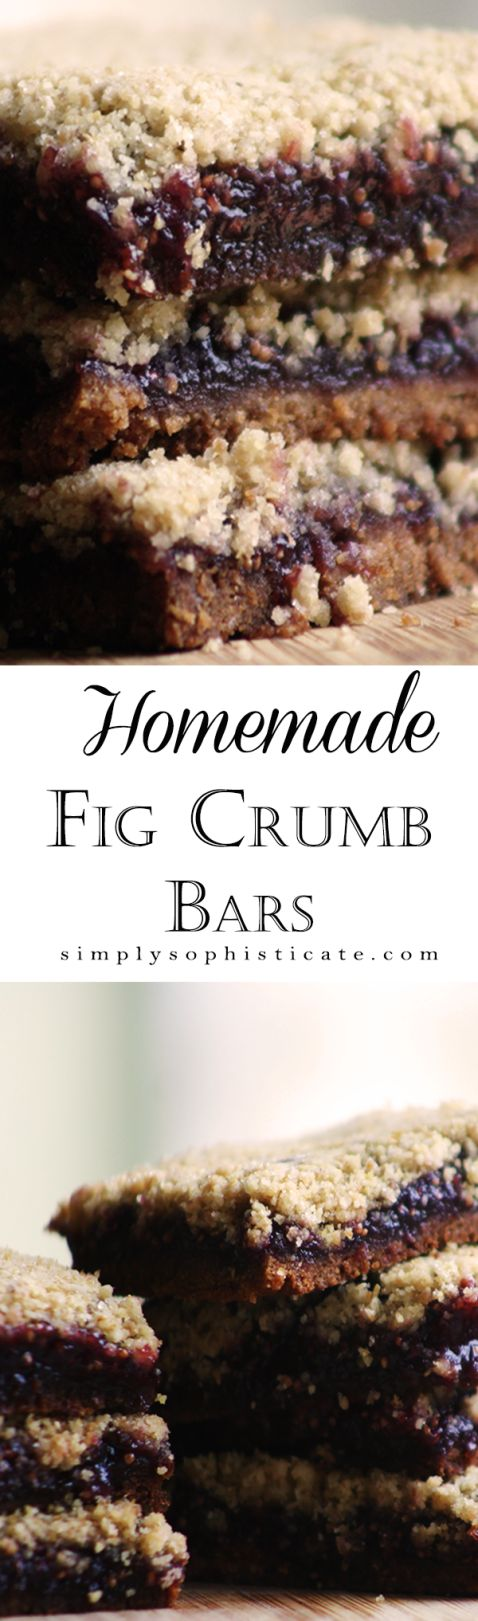 Homemade Fig Crumb Bars | Recipe | Homemade, Bar and Figs